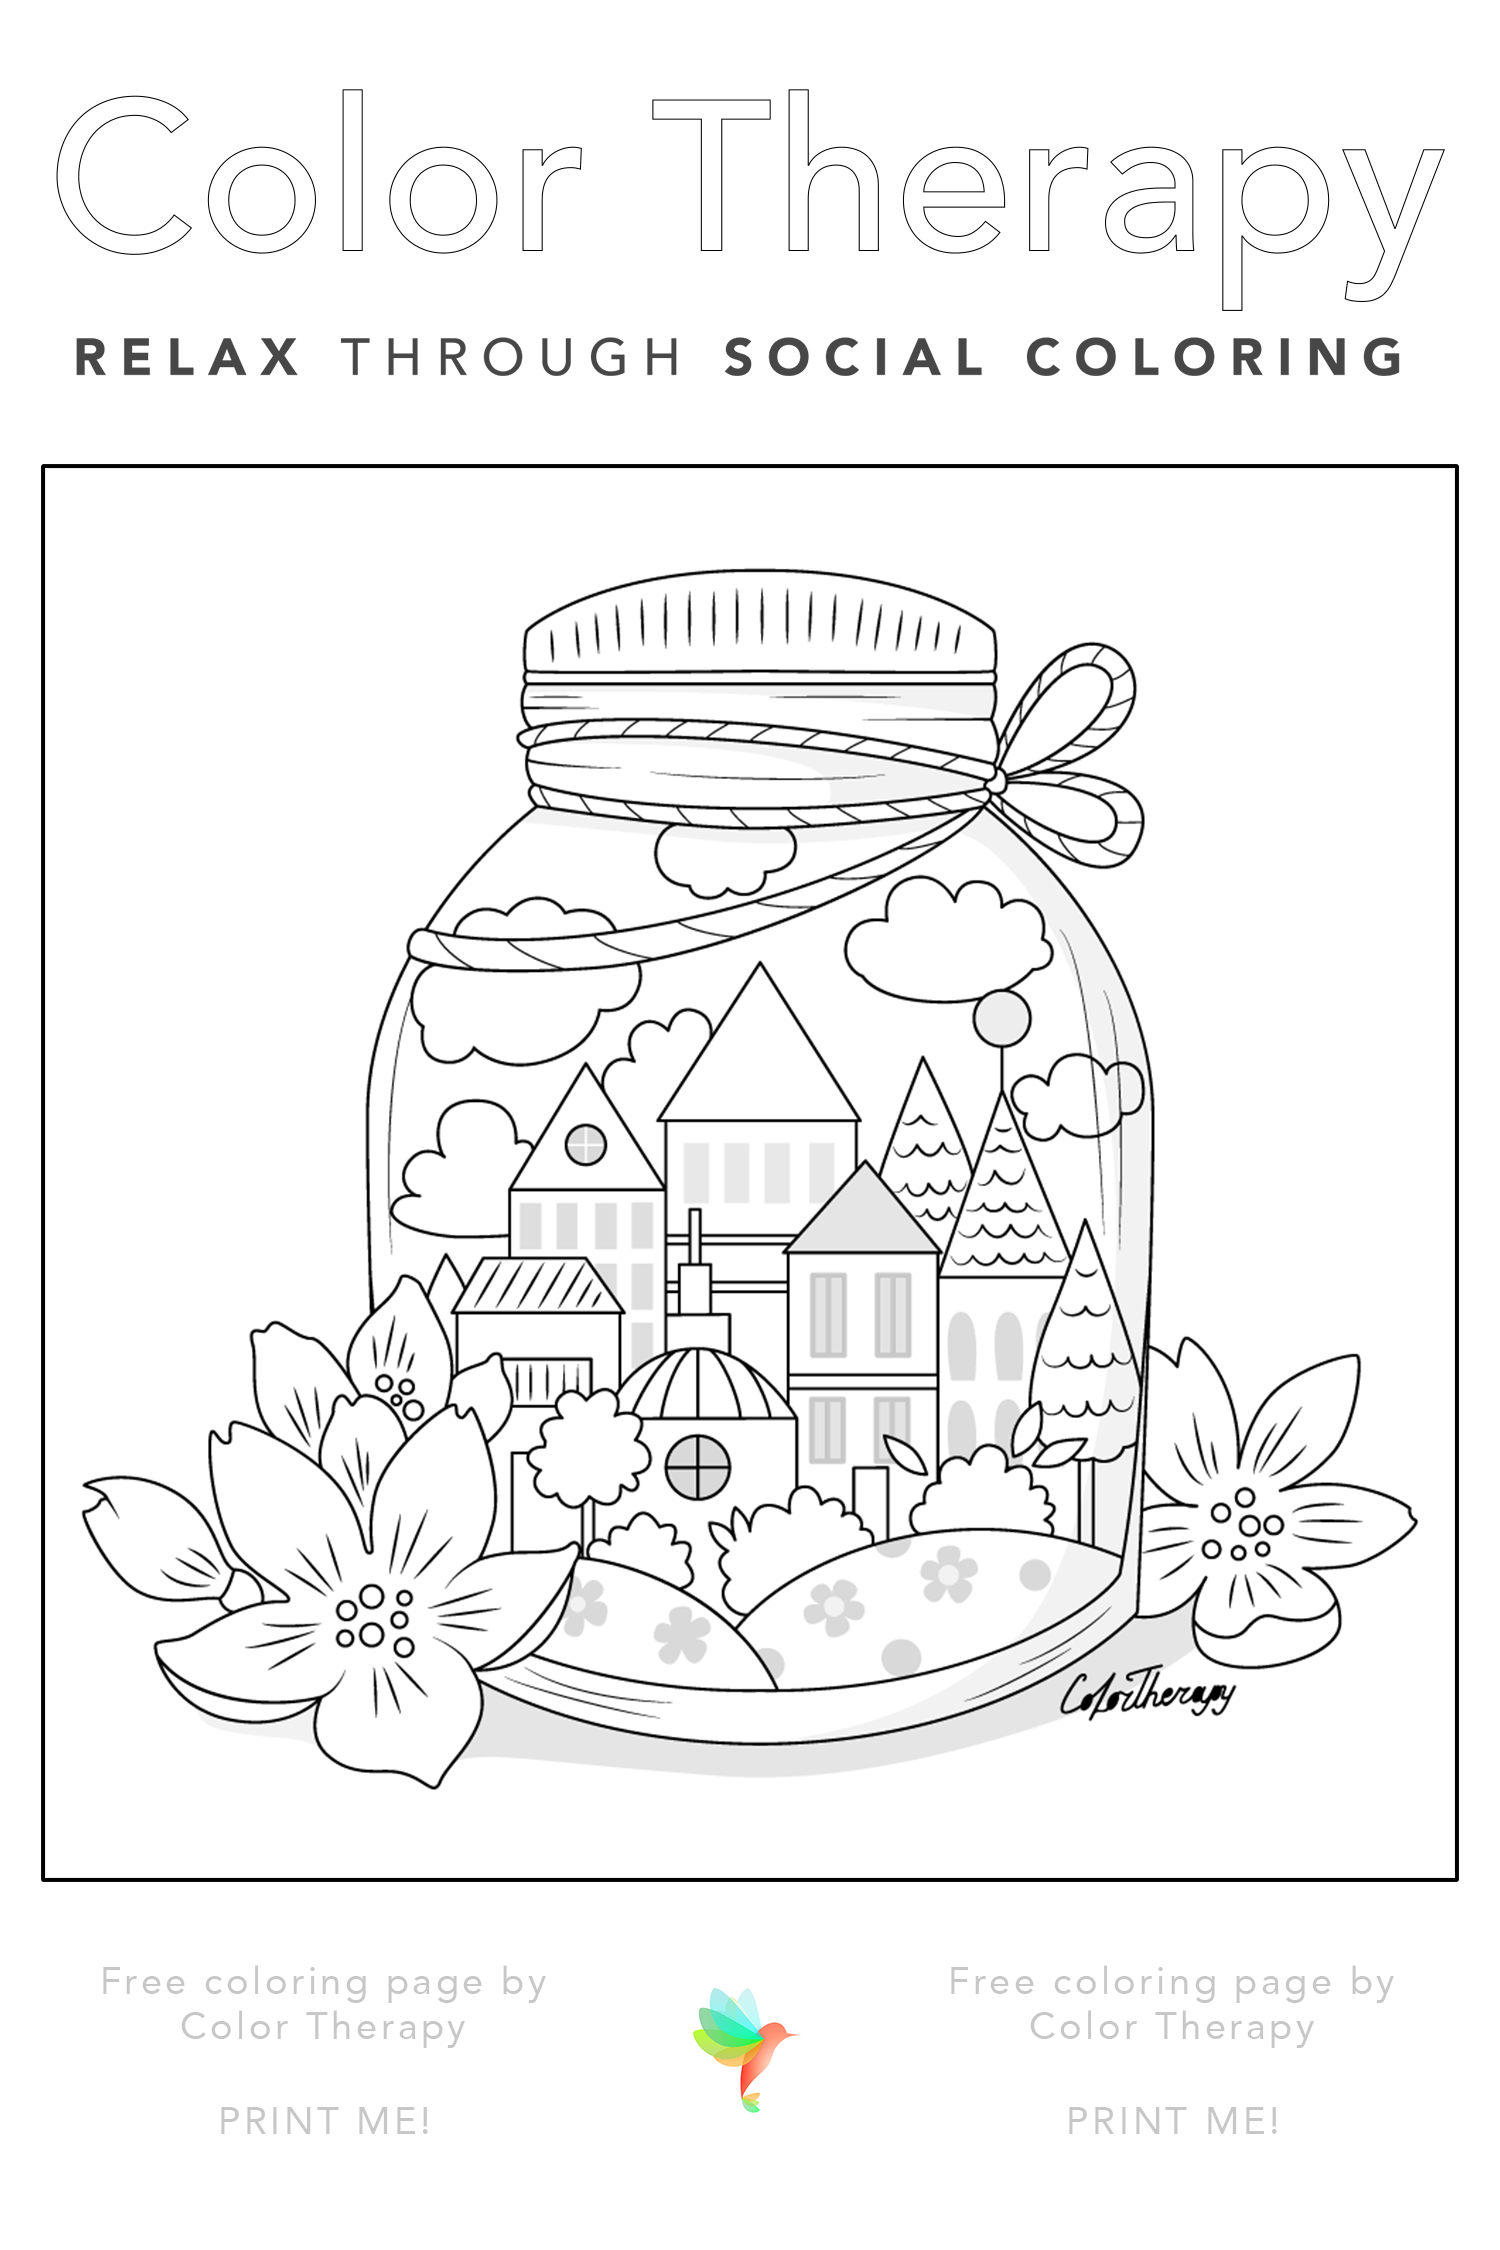 Free Coloring Page Created By Colortherapyapp A Whole Town